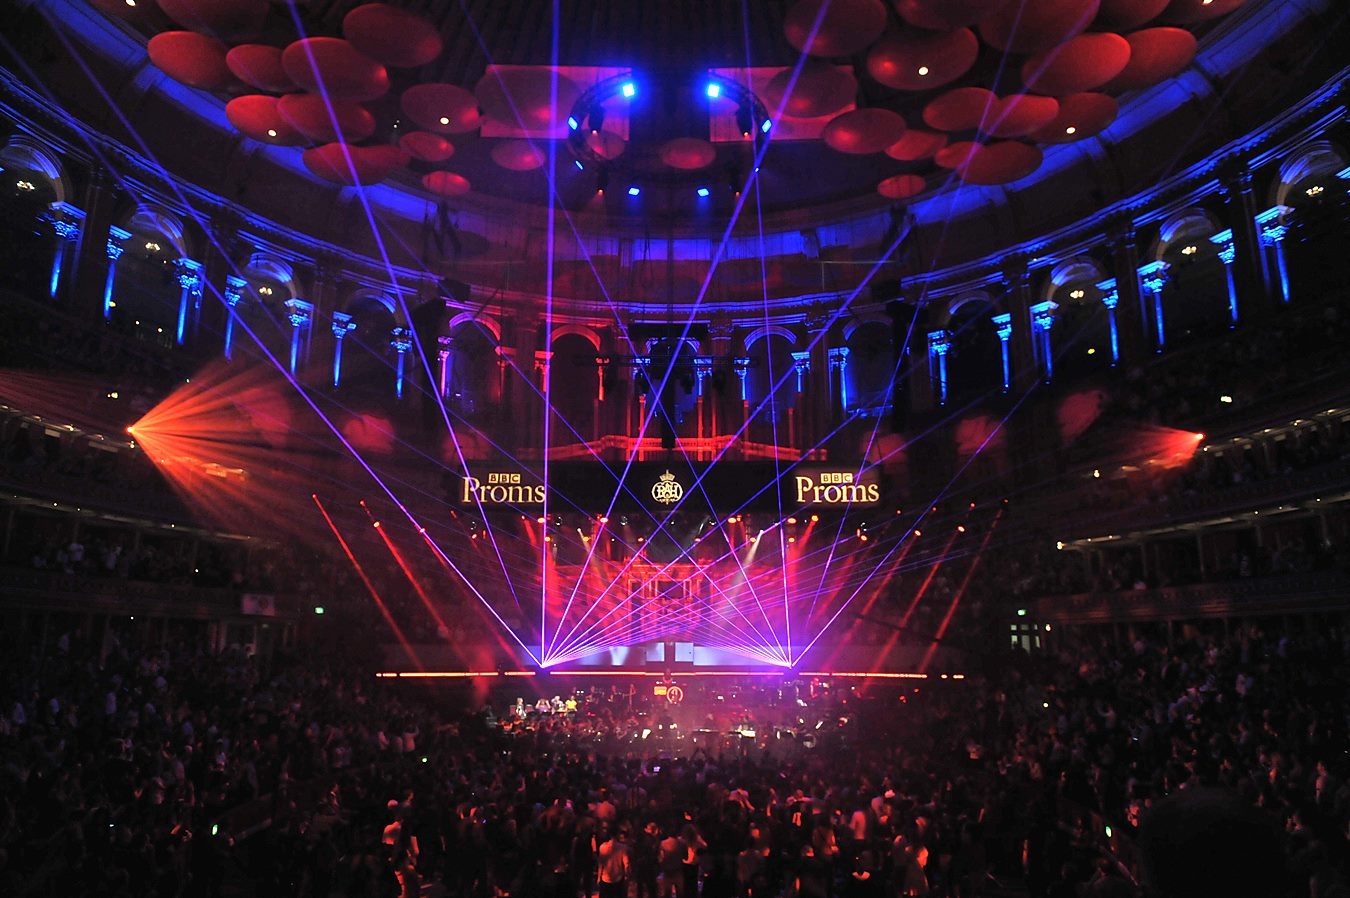 BBC Radio 1 Ibiza Proms